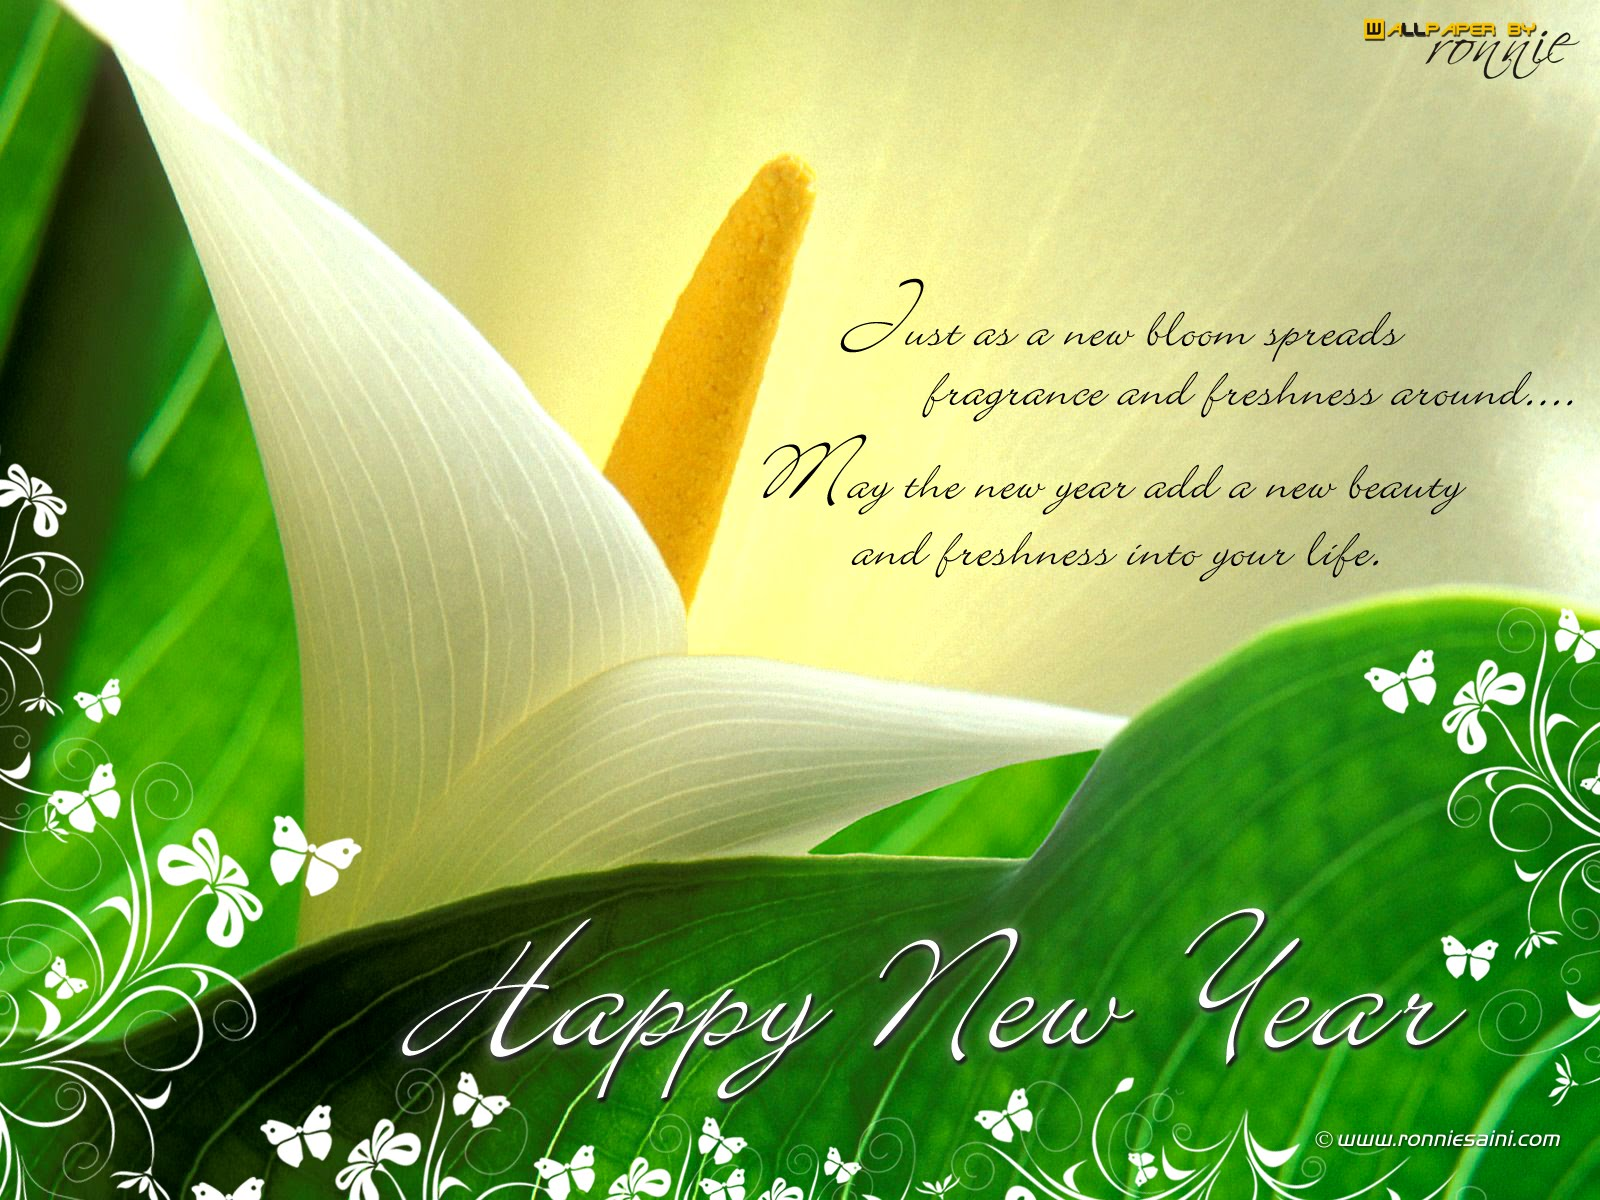 2013 New Year Wishes Wallpapers and sms. 1600 x 1200.Wish For Happy New Year  Greetings